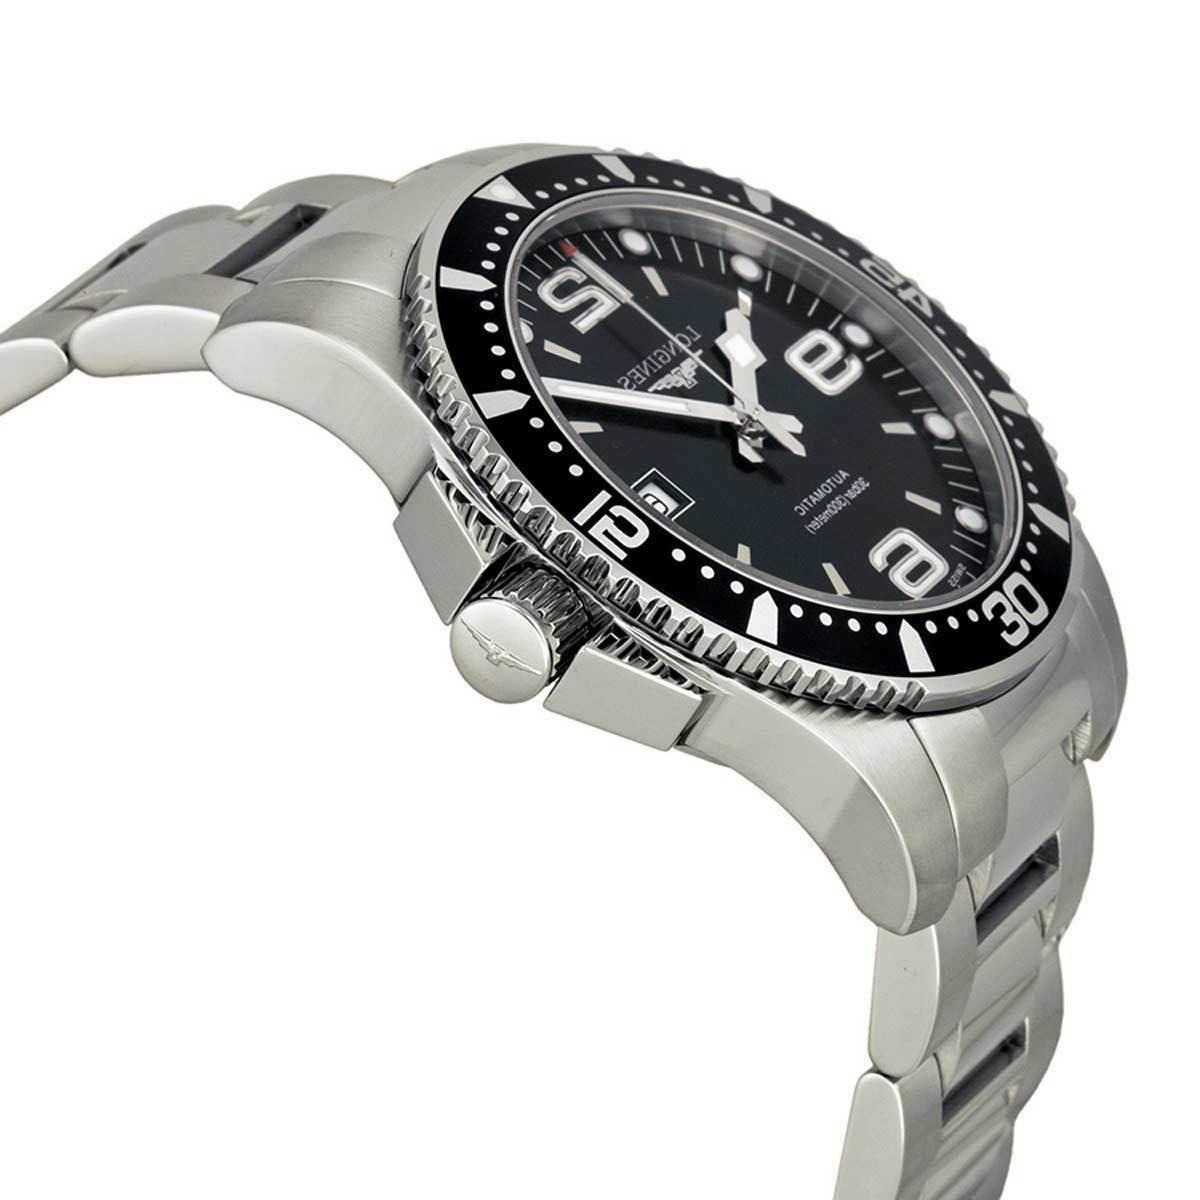 New Longines Hydroconquest Dial Automatic Steel Dive